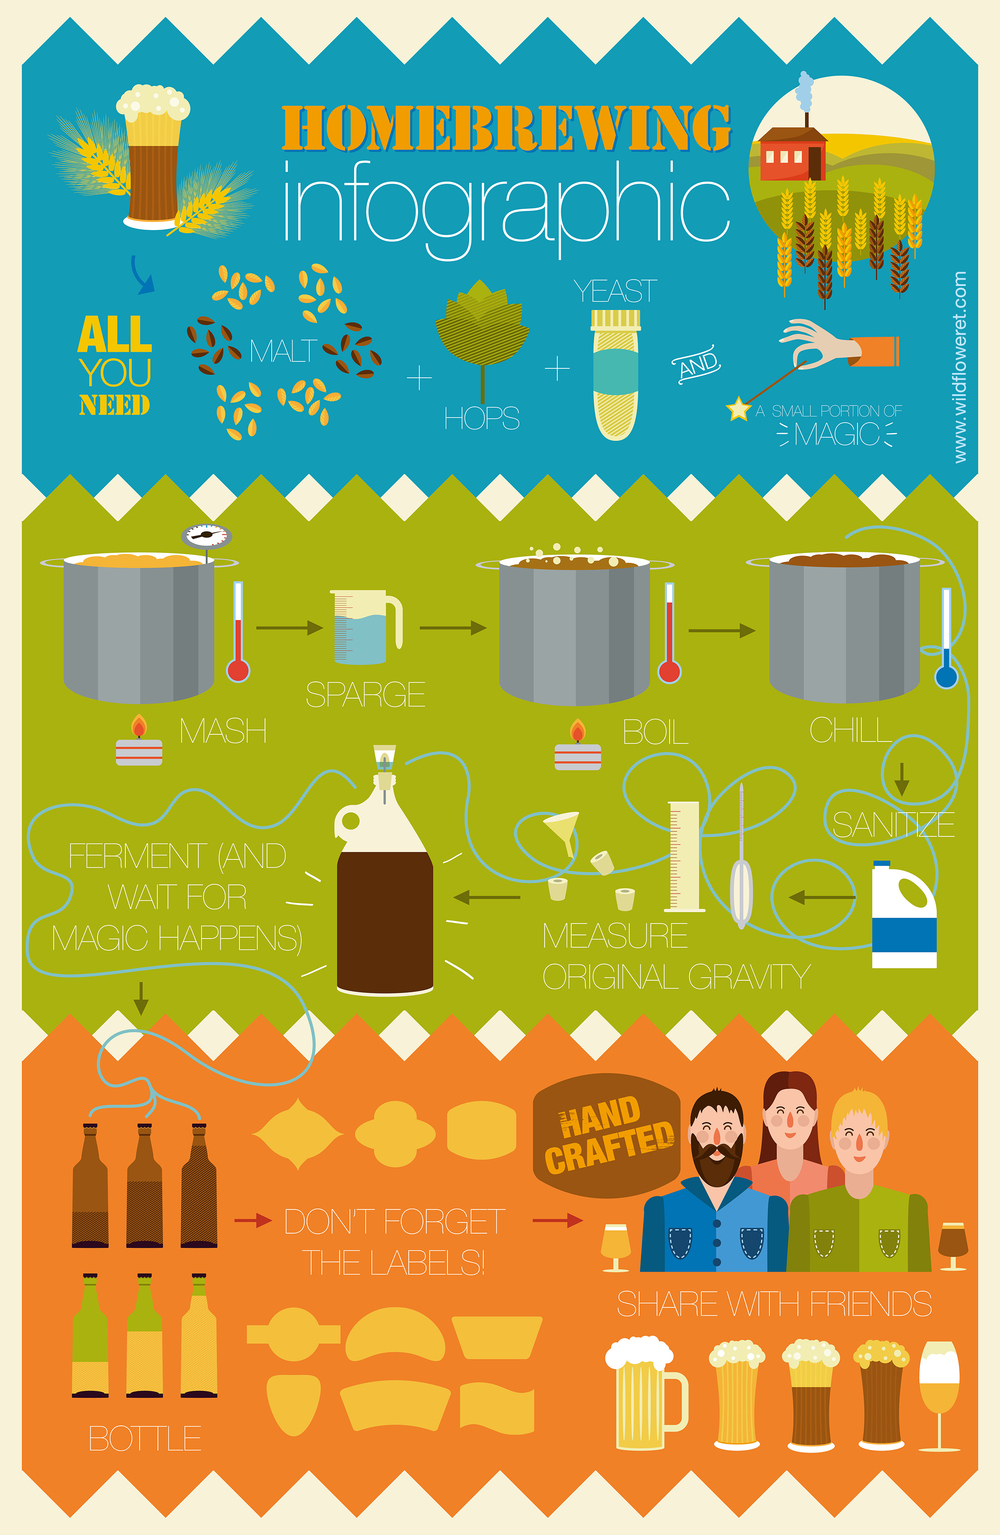 Homebrewing infographic